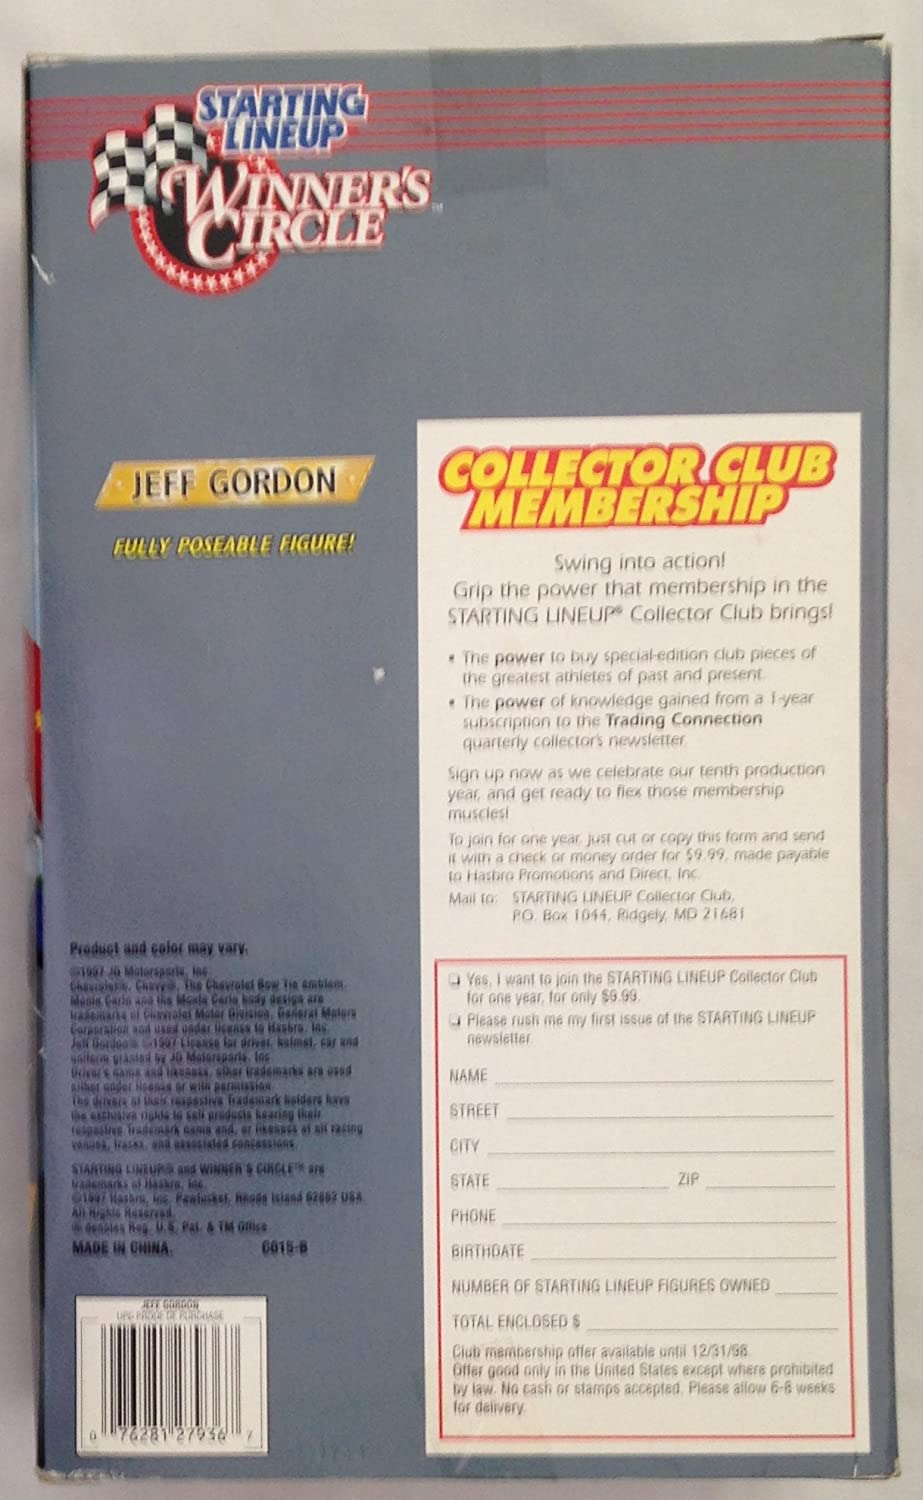 Jeff Gordon Dupont Winners Circle Starting Lineup NASCAR 1.5 Tall Fully Poseable Action Figure Dated 1997